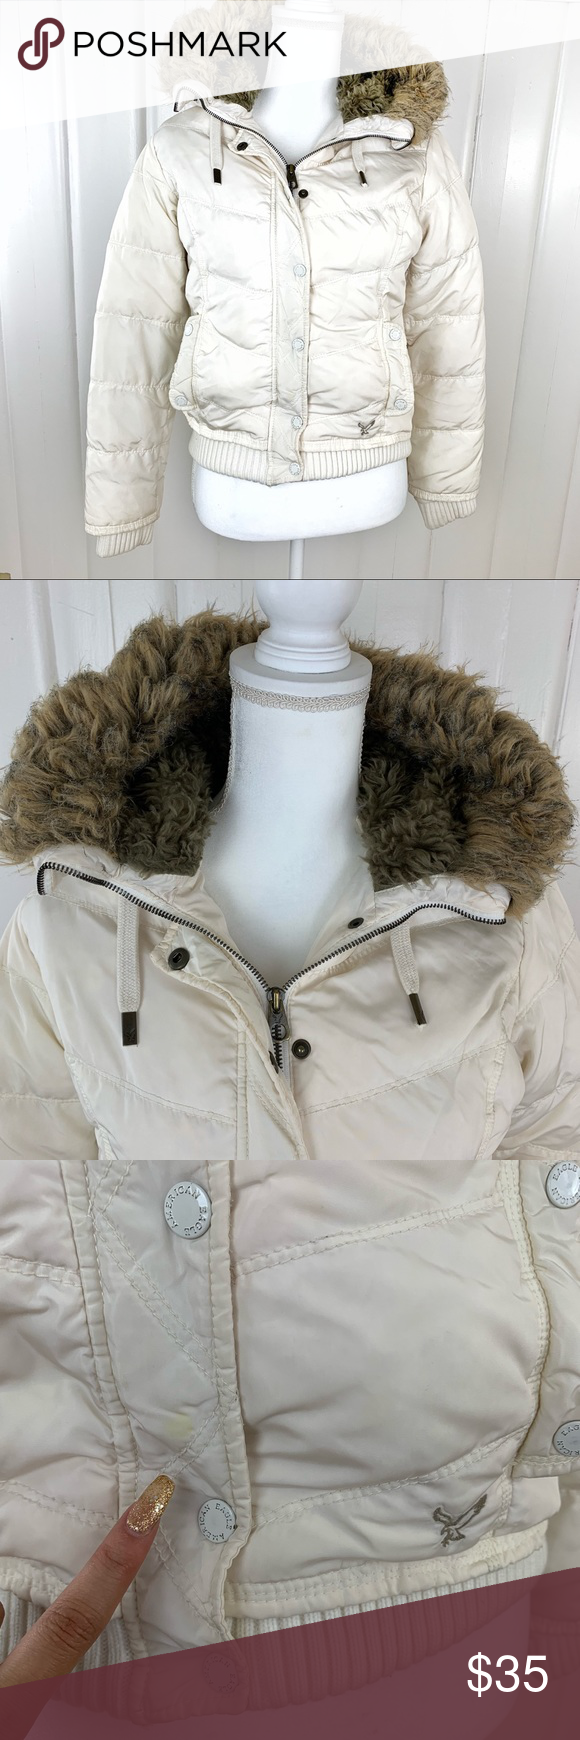 American Eagle Off White Puffer Jacket Sz S American Eagle Jacket American Eagle Jackets [ 1740 x 580 Pixel ]